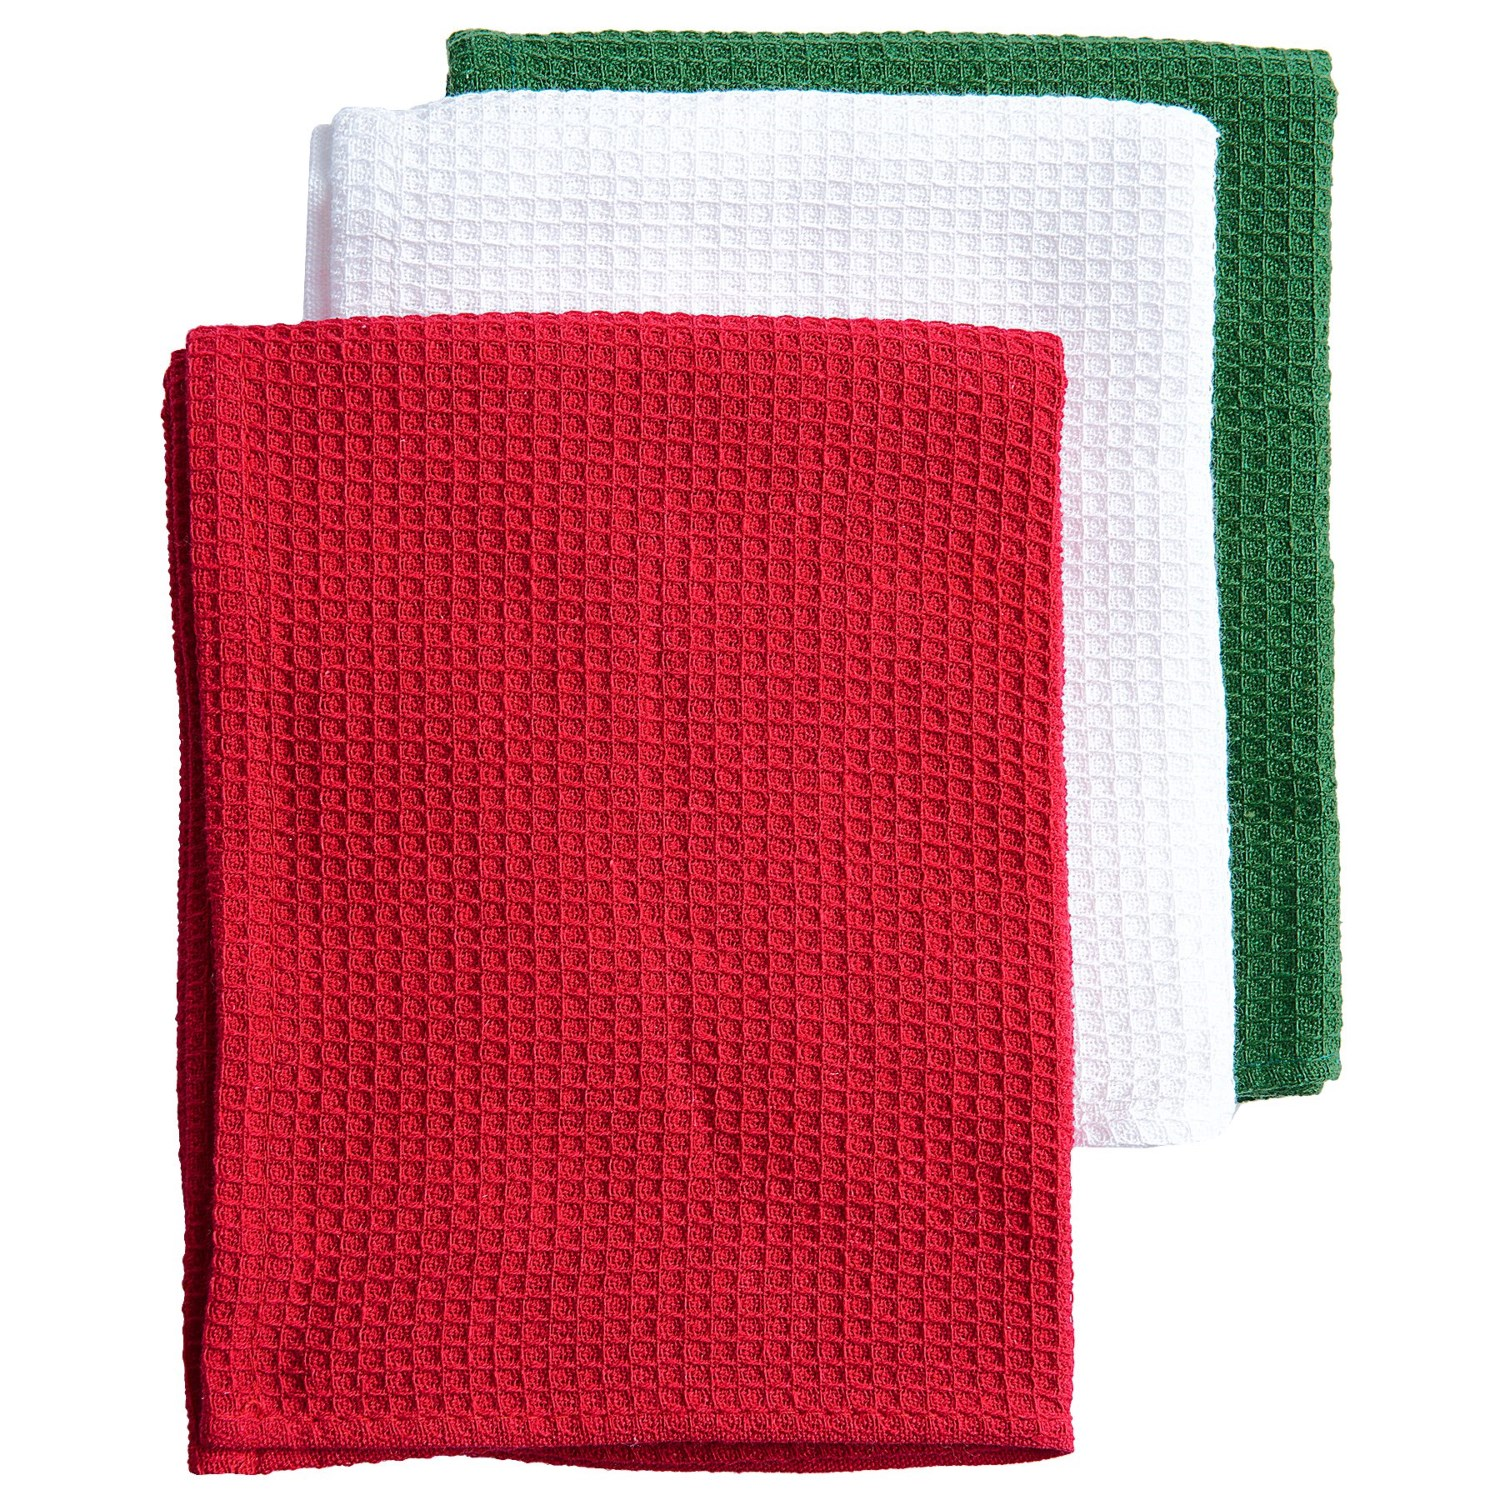 Dish Towel In: DII Kitchen Linen Dish Towel Gift Set